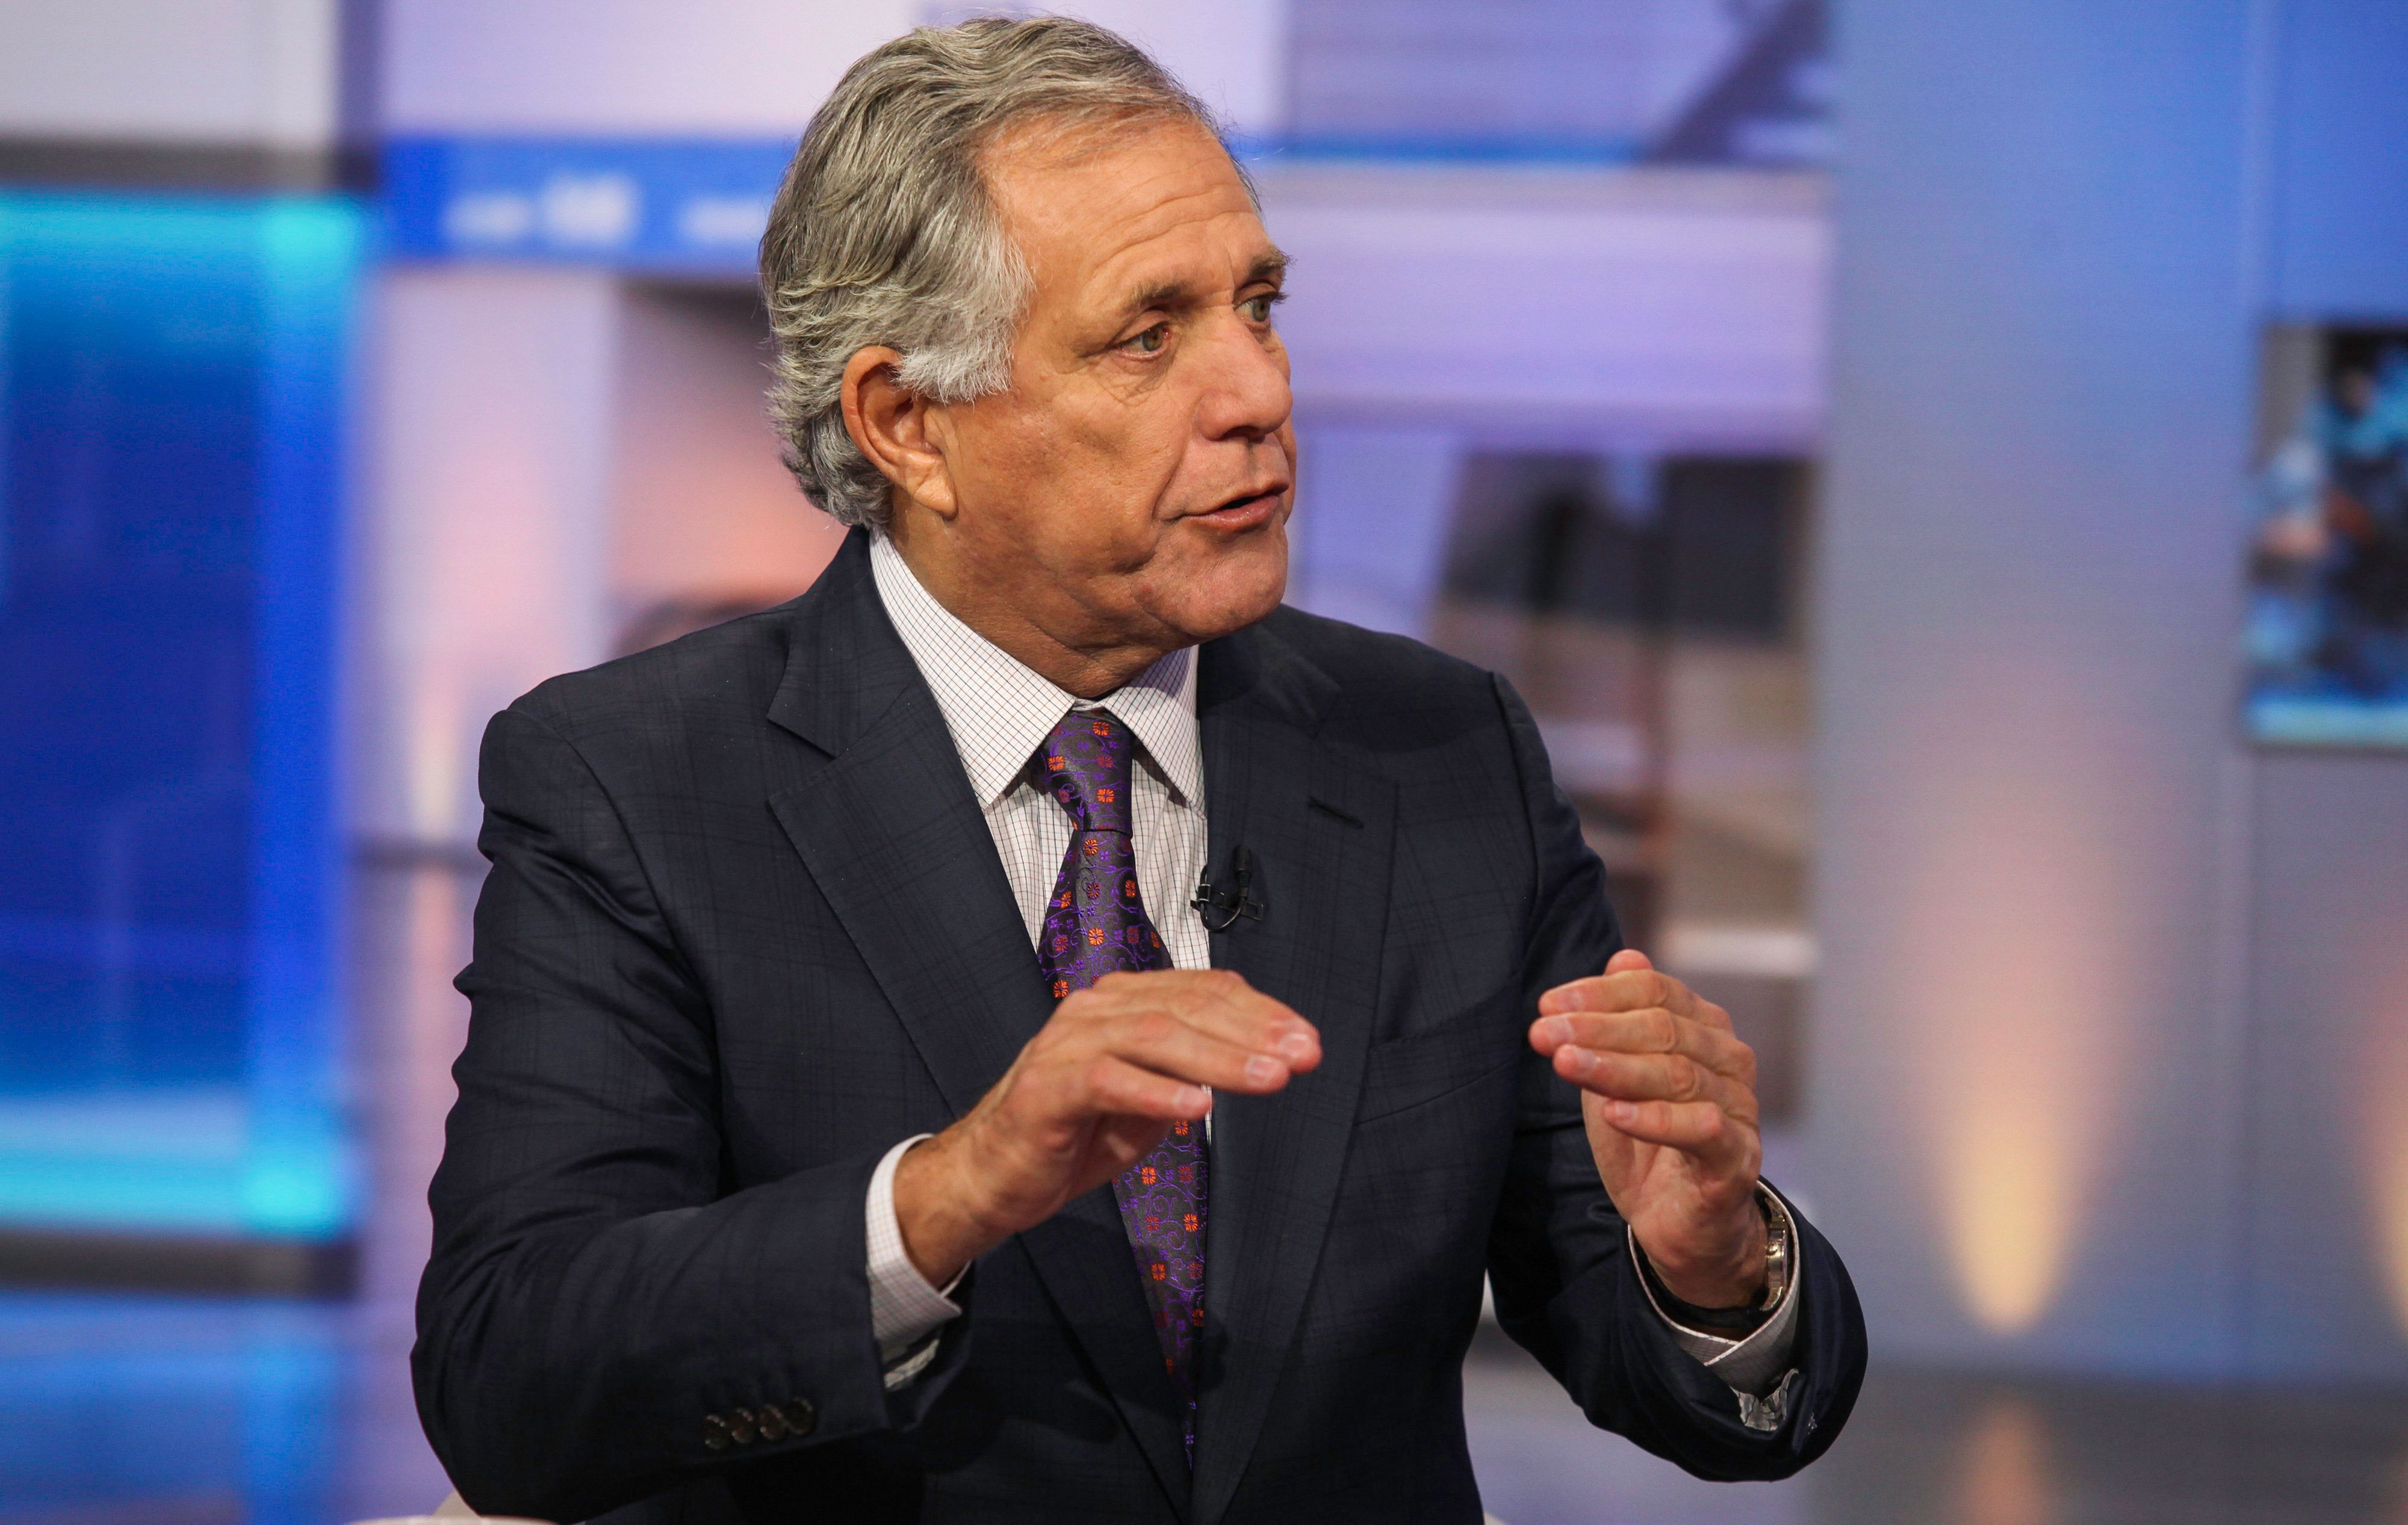 Head Of CBS Says Trump Is 'Damn Good' For Business